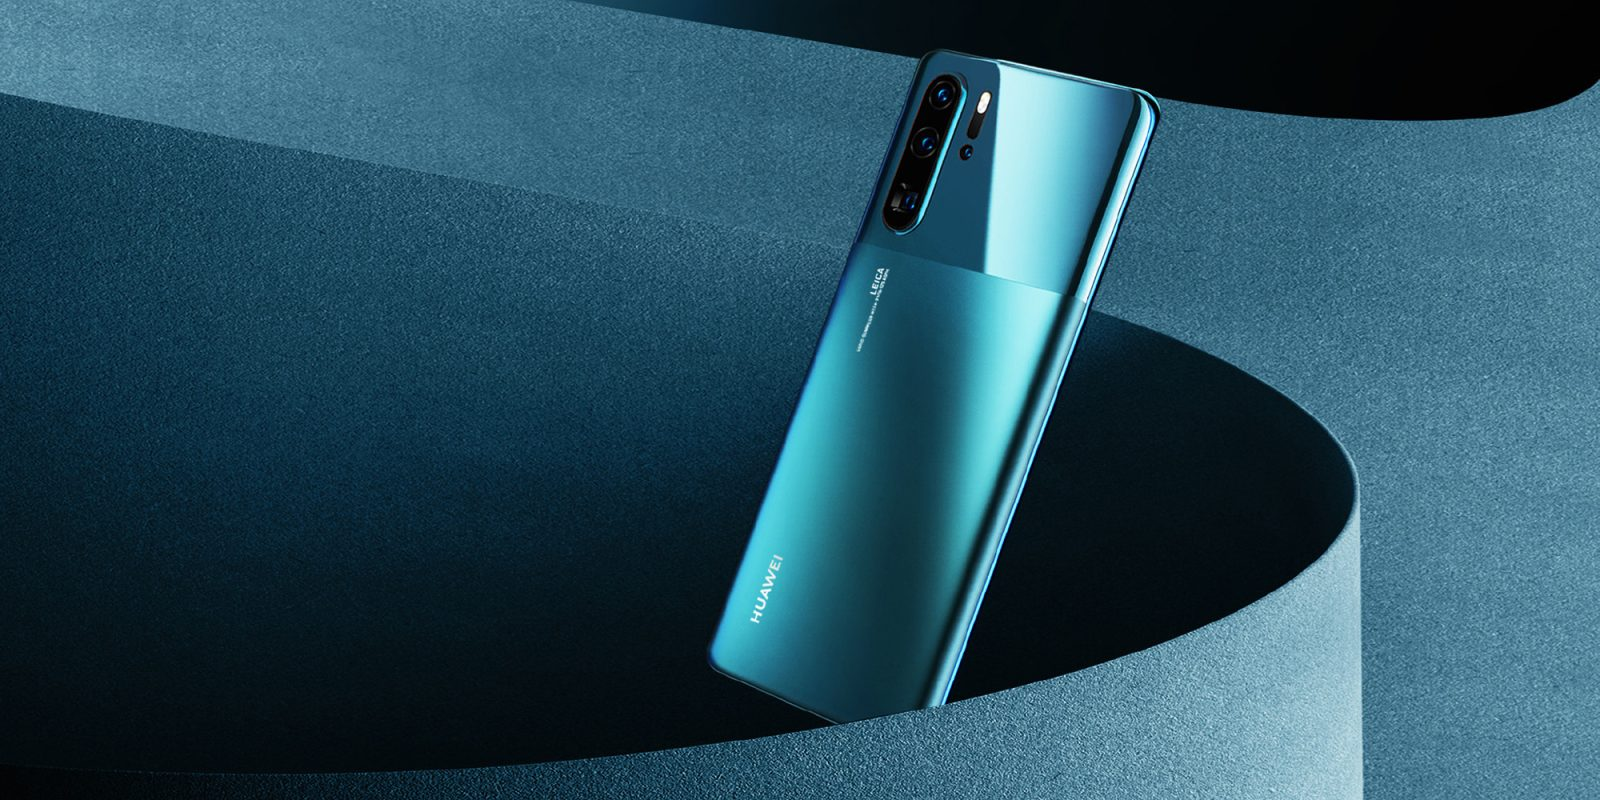 Huawei P30 Pro sold over 16 million devices in 6 months, 'new' version goes official